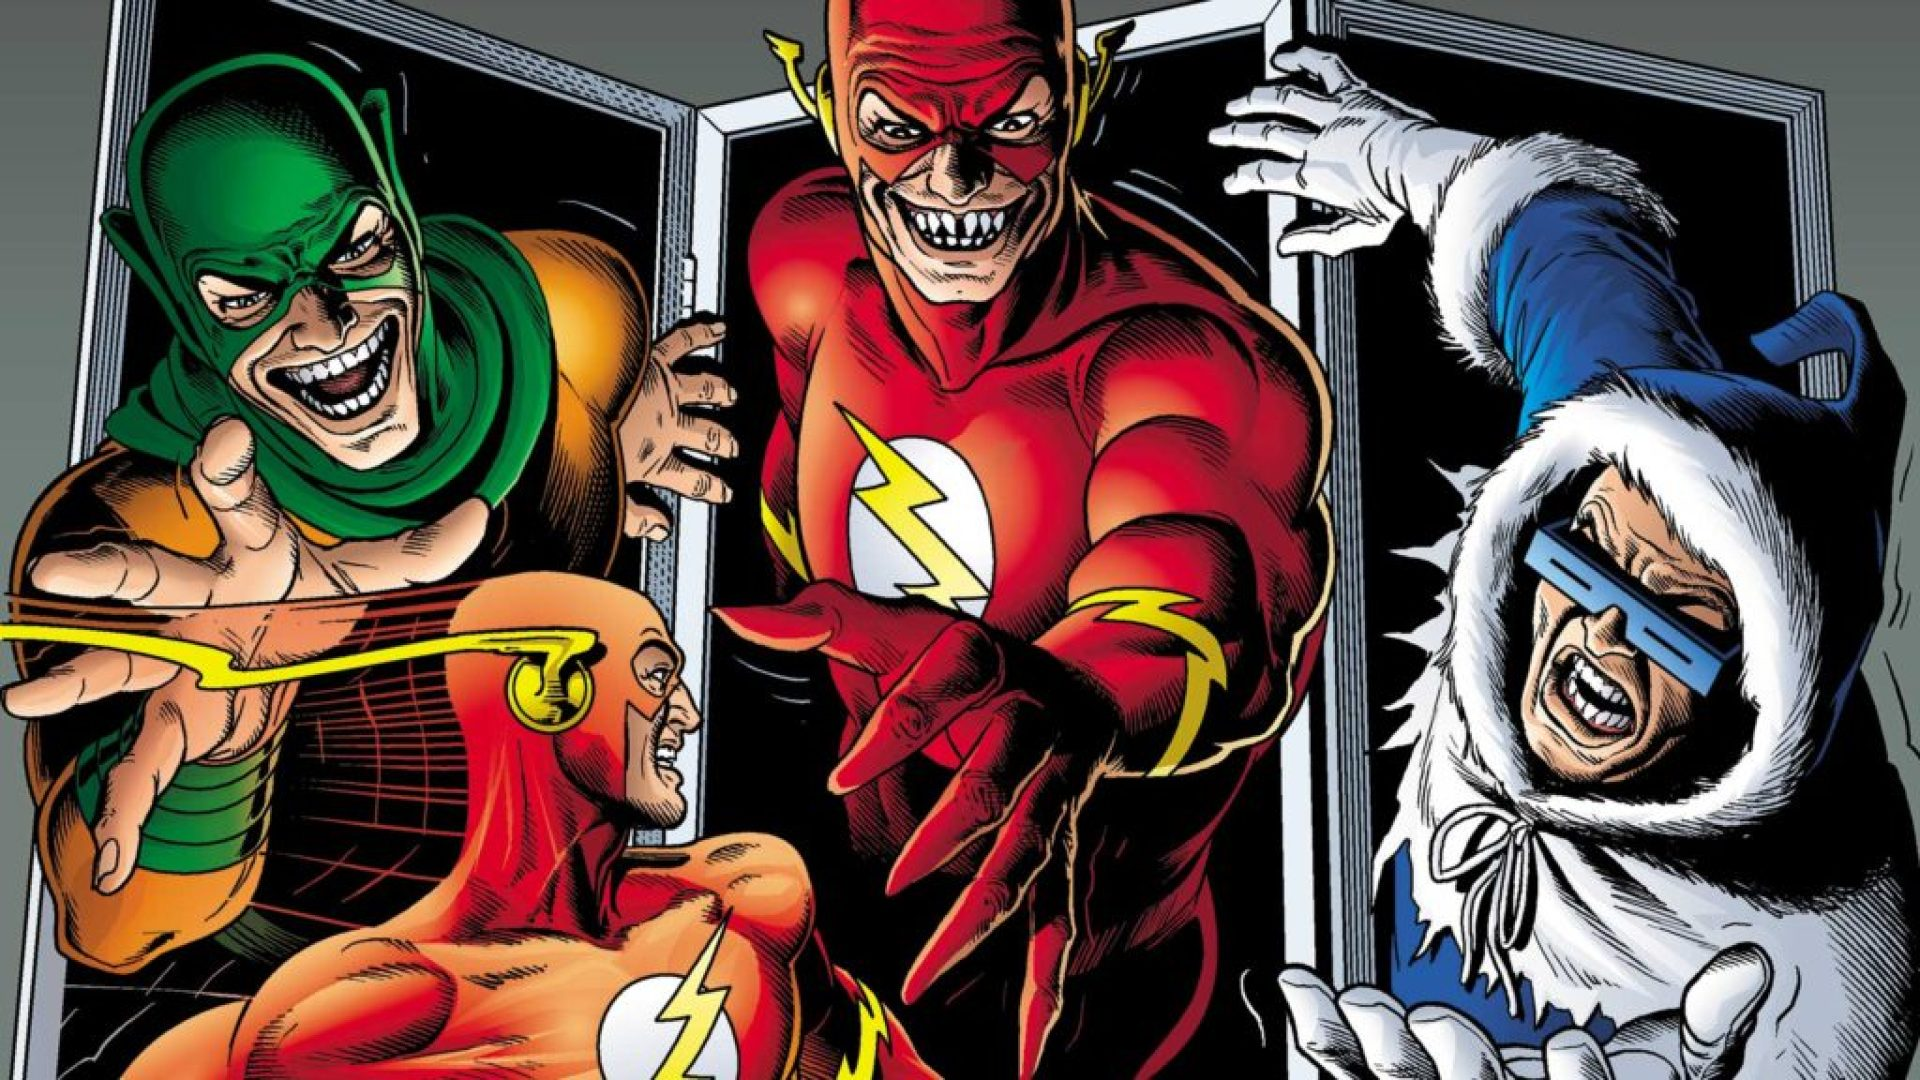 Geoff Johns wrote the flash for most of the 2000's